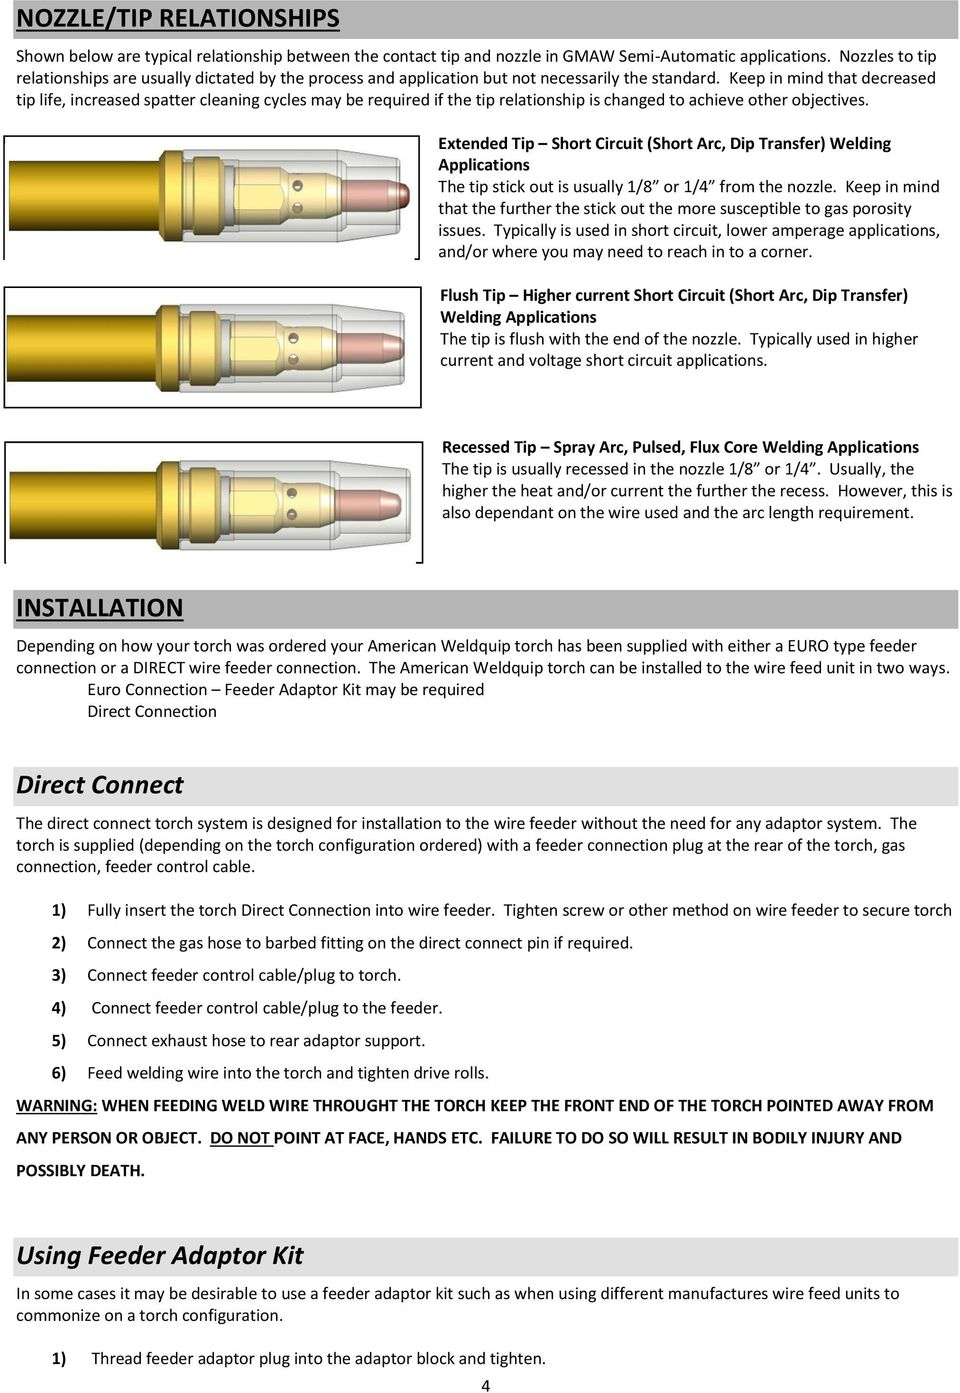 For Models 347sm 407sm 507sm Installation Operations And Diagram Tippmann Bravo One Gun C3 Keep In Mind That Decreased Tip Life Increased Spatter Cleaning Cycles May Be Required If